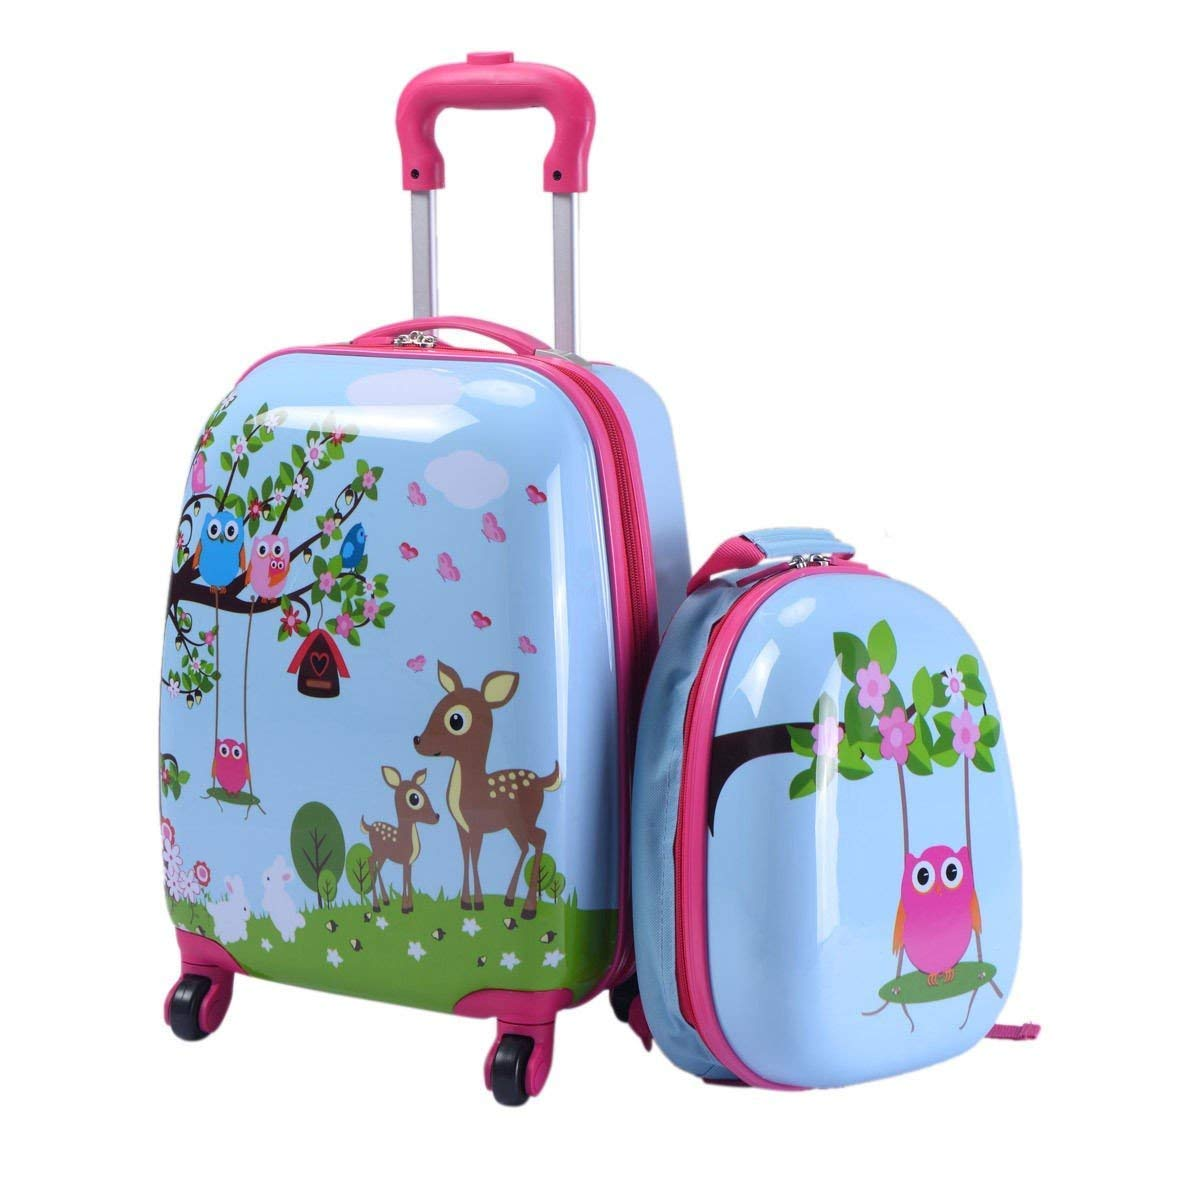 MOREFUN 2 Pcs Kids Travel Luggage Set 18'' Carry on Luggage and 13'' Backpack (Deer) by Morefun Trading (Image #2)